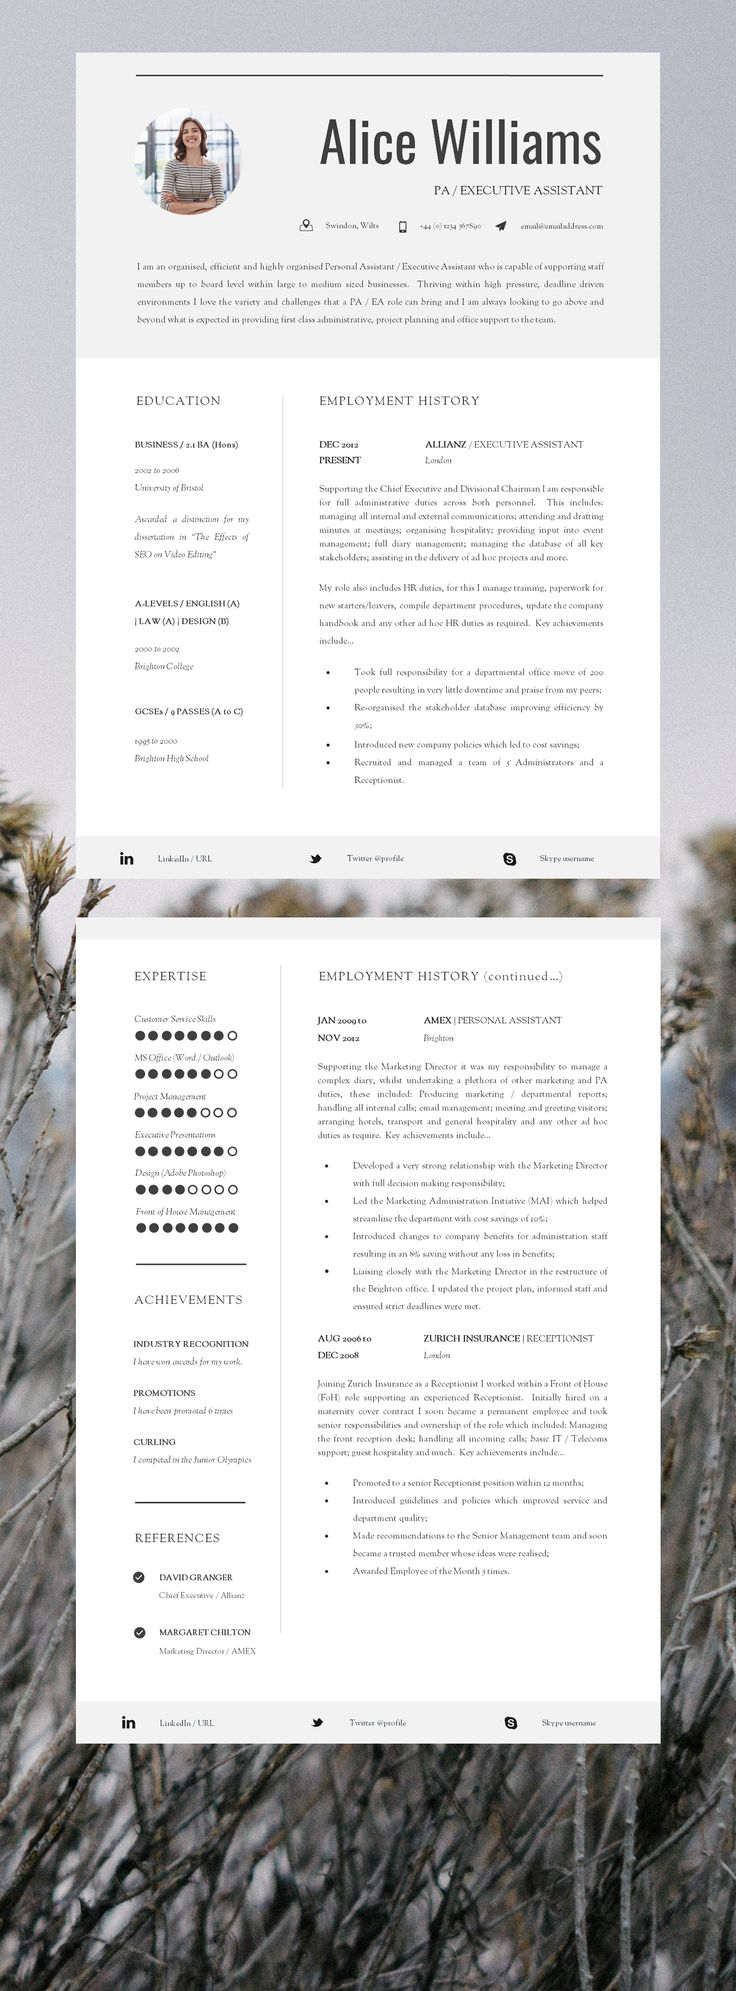 Best 147 Job images on Pinterest | Curriculum, Resume and Resume cv